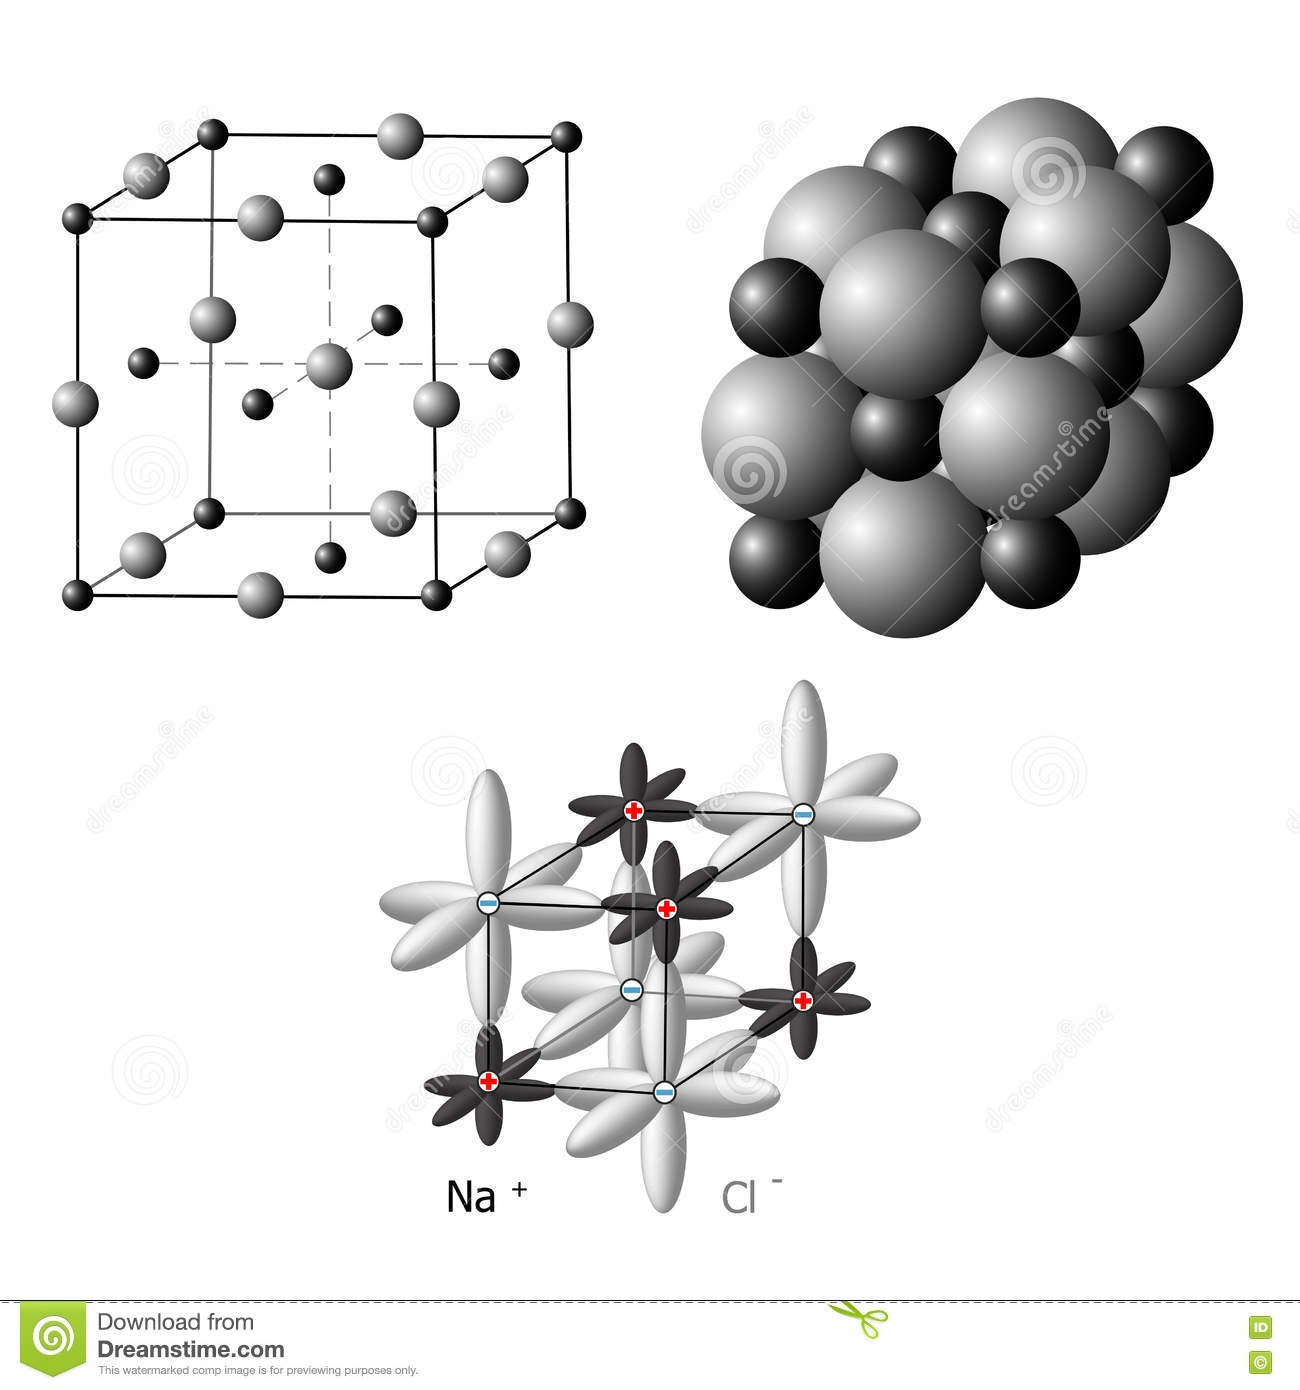 ionic crystals the structure of sodium chloride nacl stock. Black Bedroom Furniture Sets. Home Design Ideas